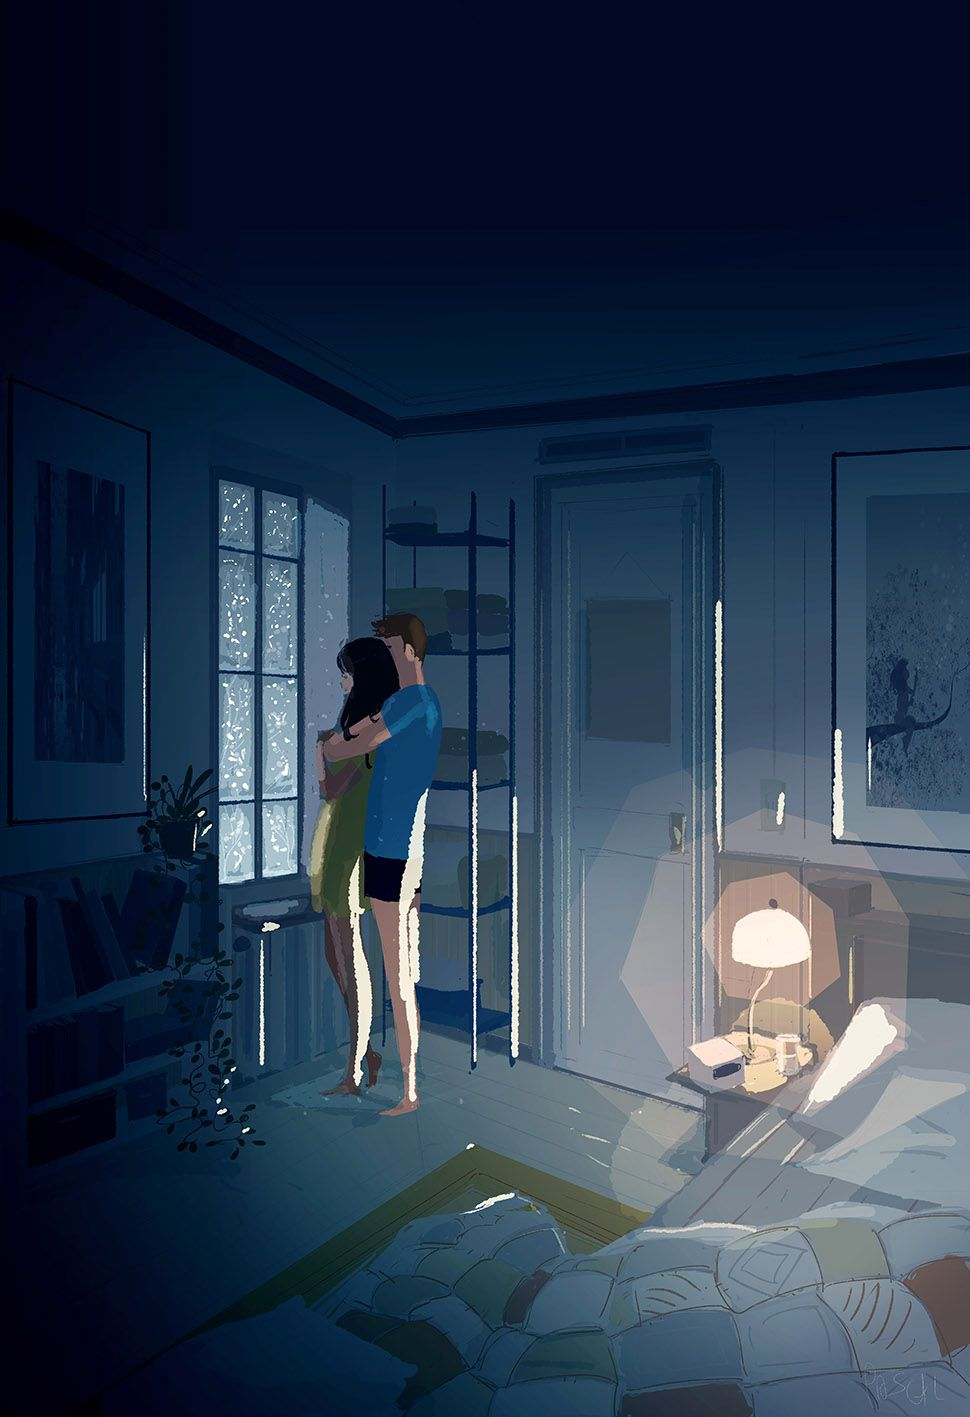 #pascalcampion. -Please...  -Yes?  -Don't let me go  -Never. Midnight by PascalCampion.deviantart.com on @DeviantArt